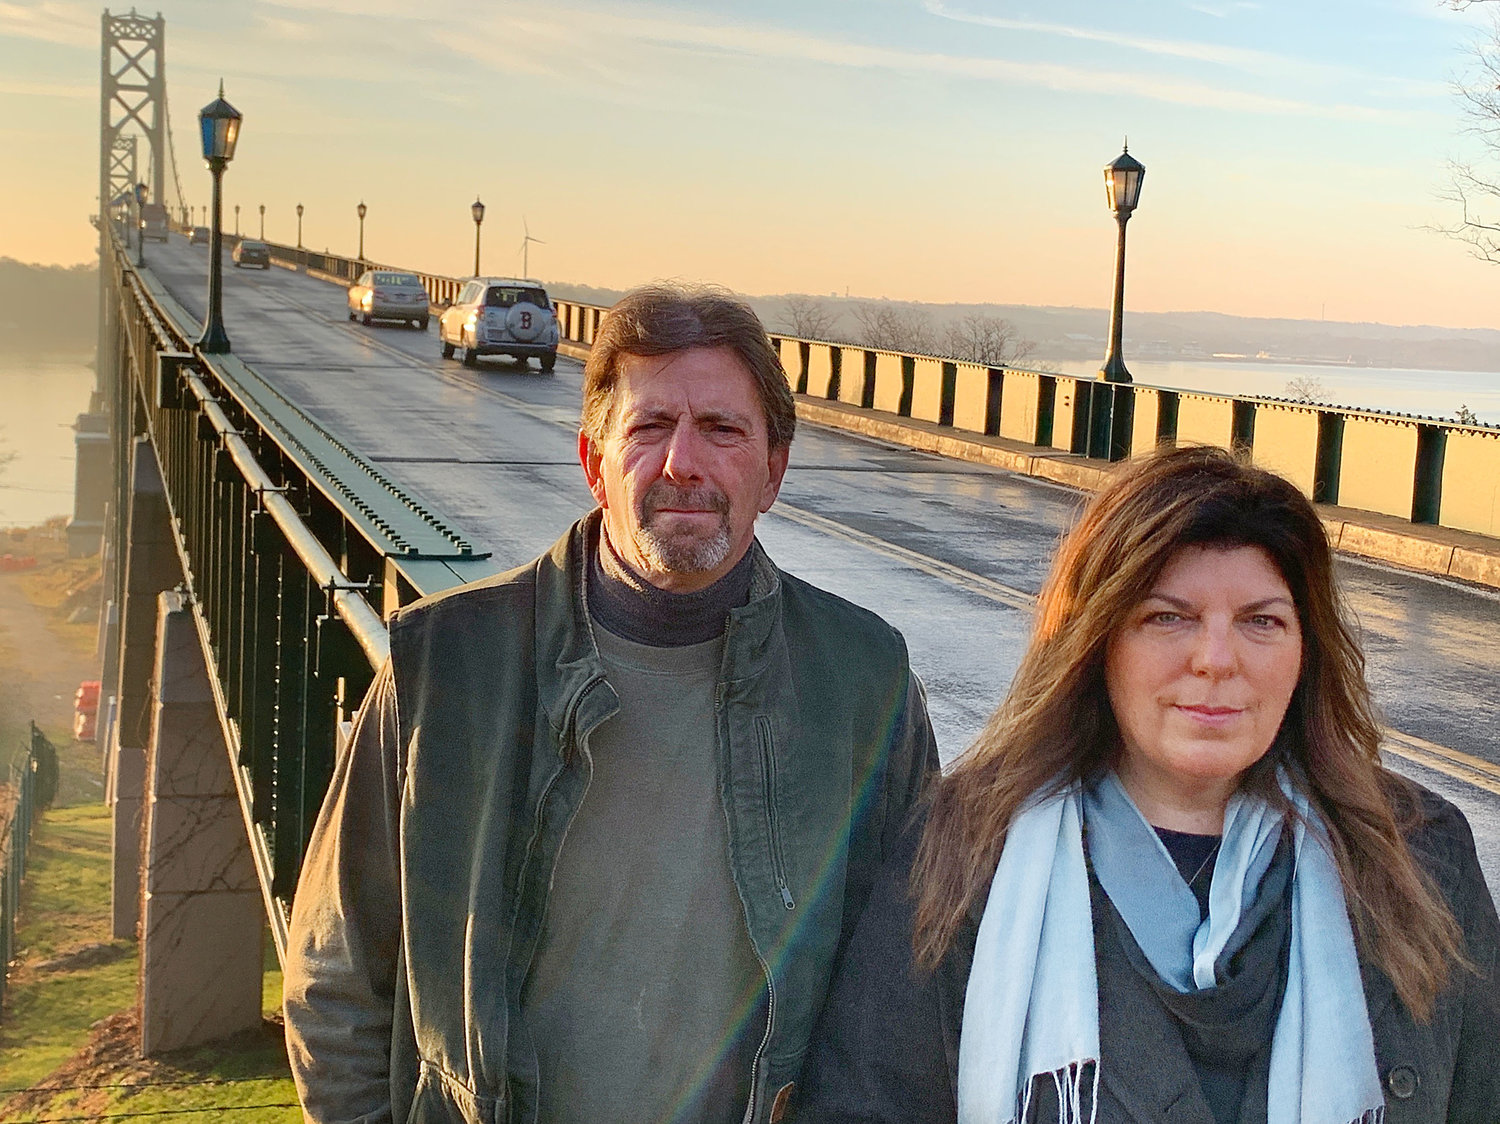 Brian Ganley (left) and Melissa Cotta both spoke to the Rhode Island Turnpike and Bridge Authority board of directors on Wednesday morning, urging them to investigate how to install suicide prevention barriers on the state's tall bridges.